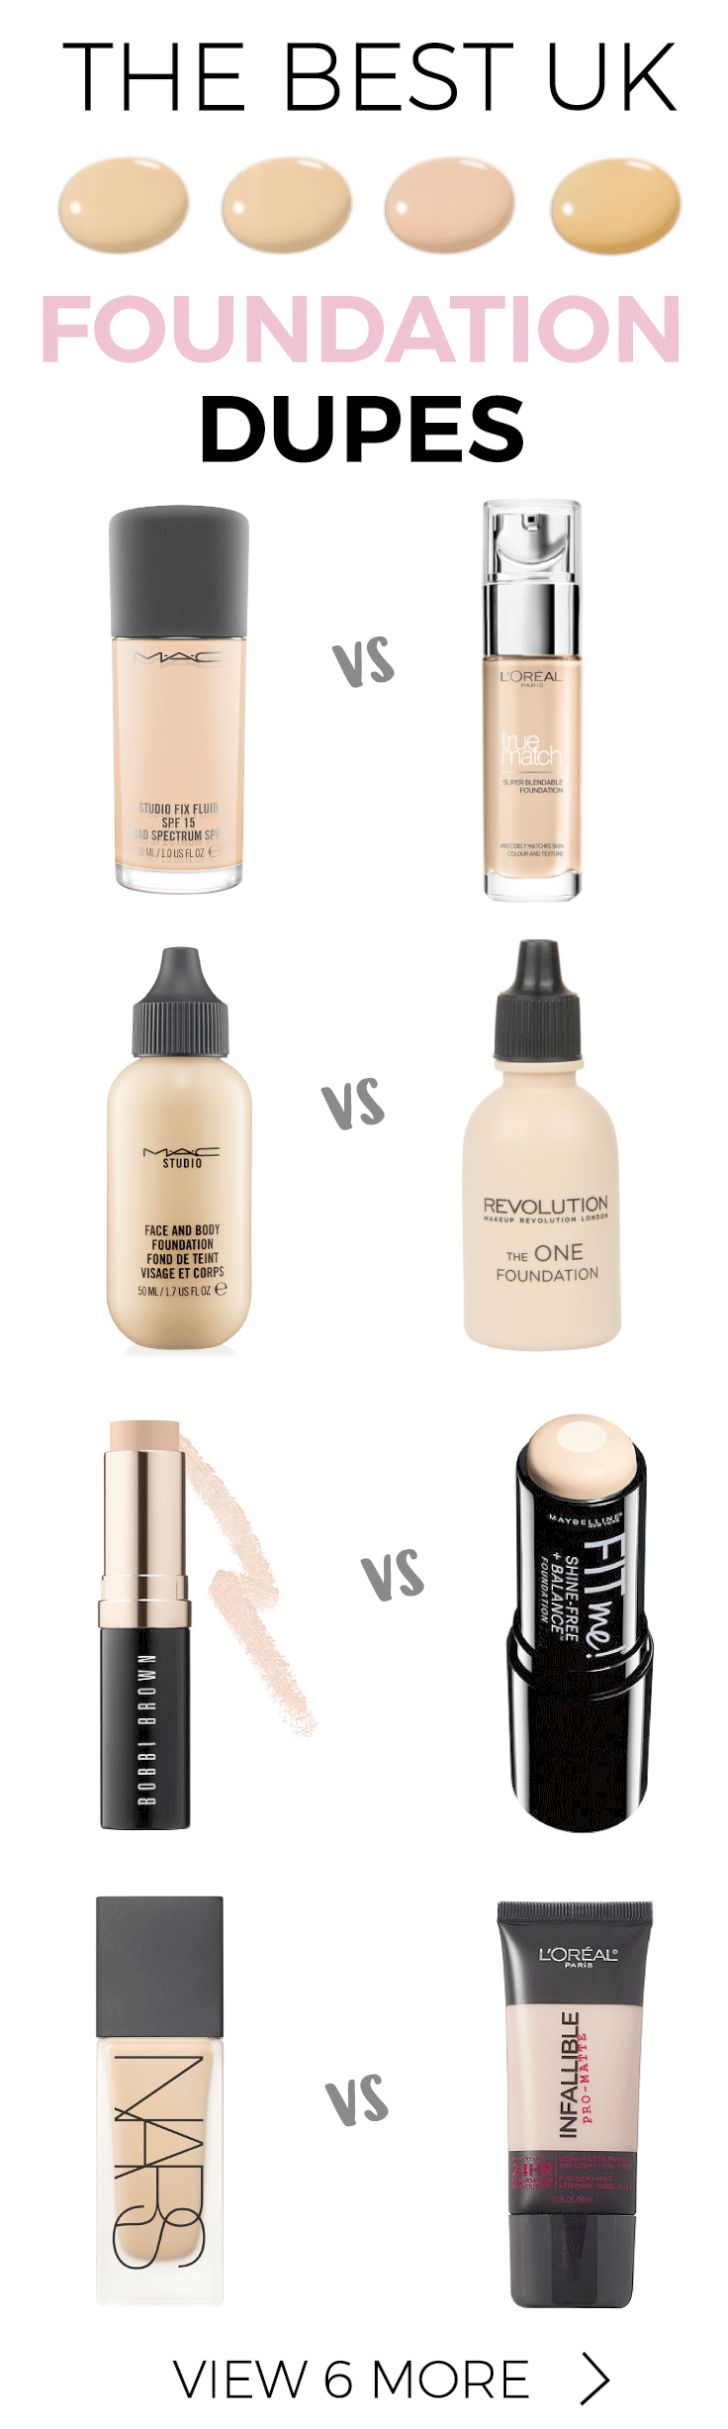 Look what I found > Makeup Revolution Stick Foundation